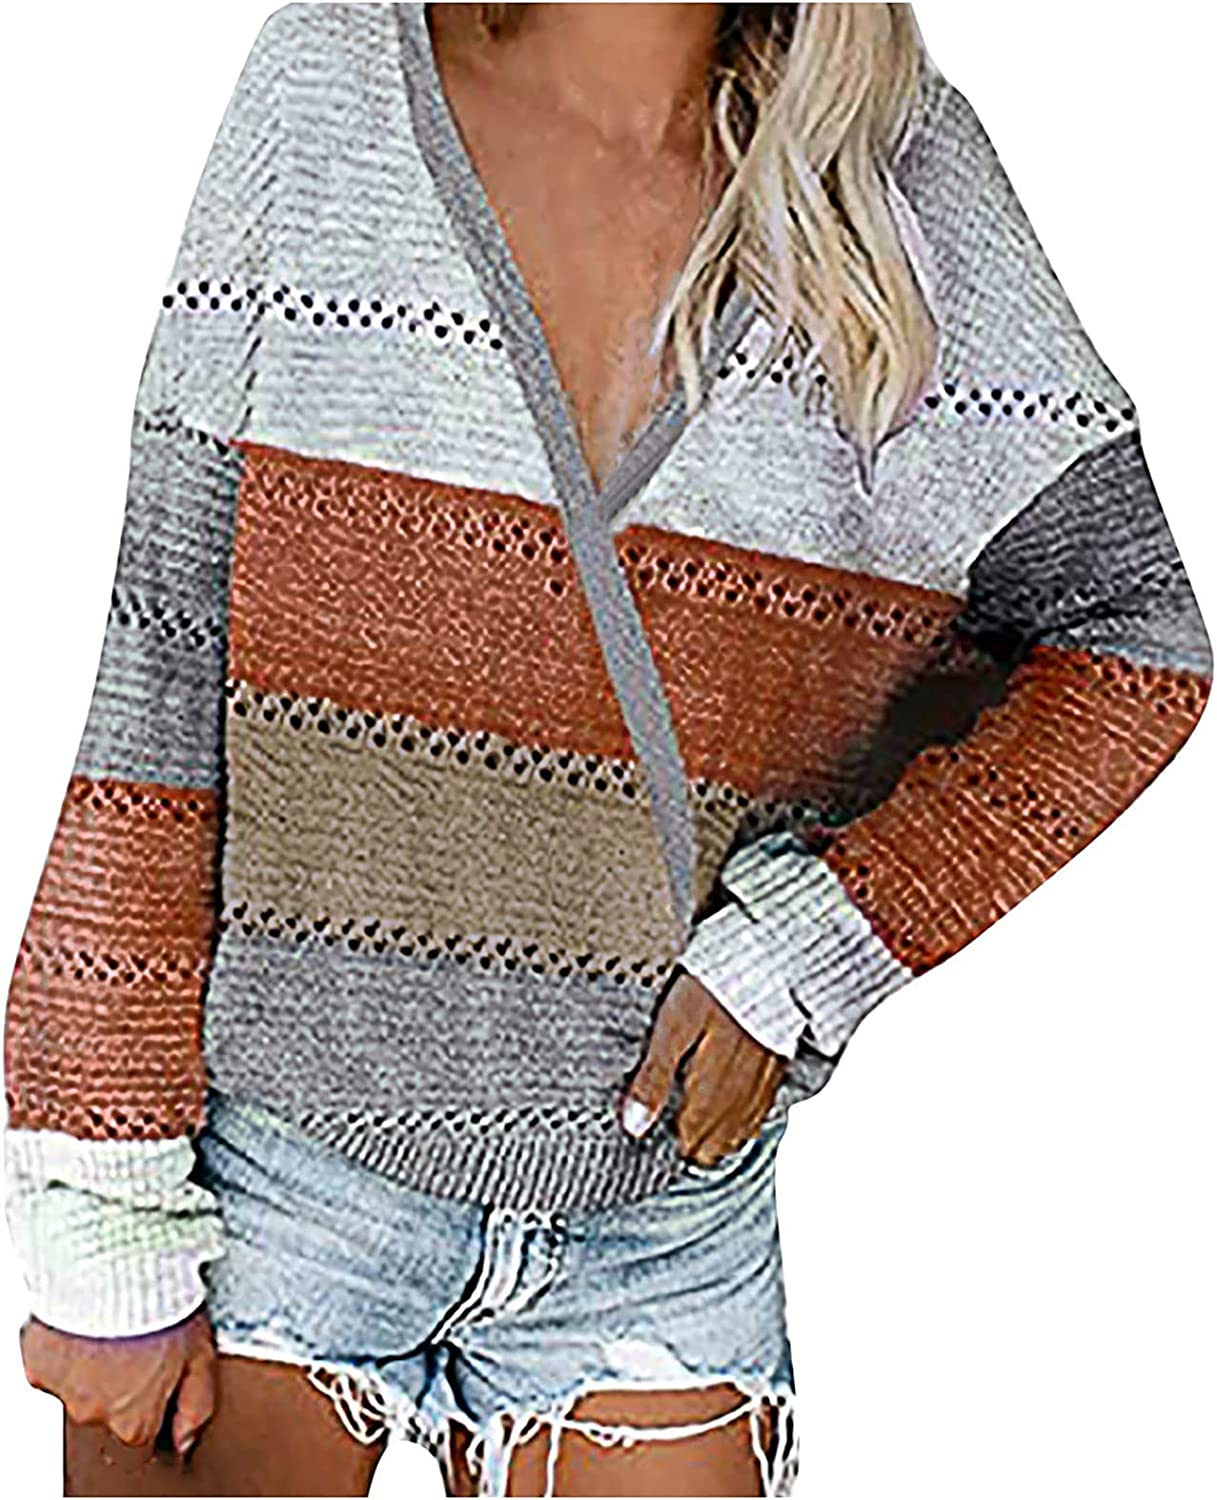 Winter Women's Long Sleeves Knit Sweater V-neck Striped Print Loose Pullover Tops Woolen Knitted Stitching Sweater